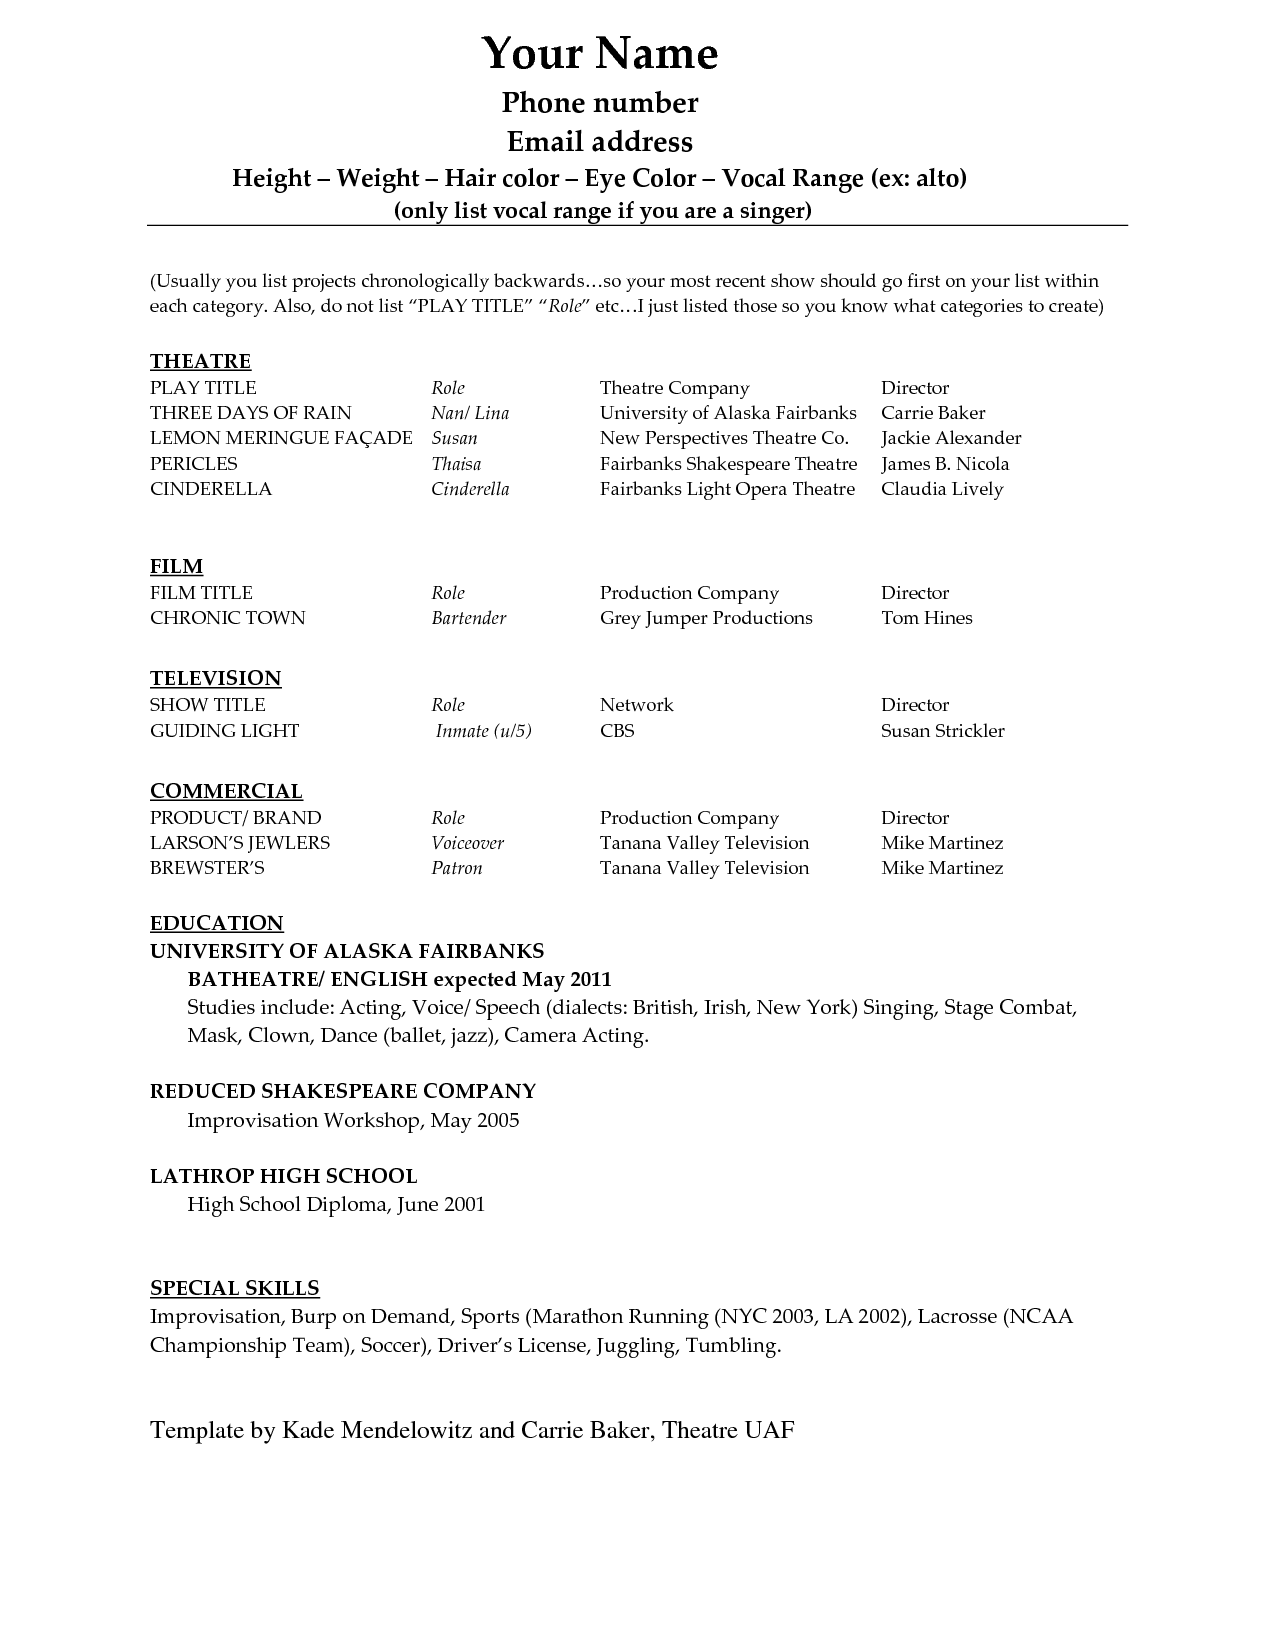 Resume Template Microsoft Word  Resume Template Microsoft Word